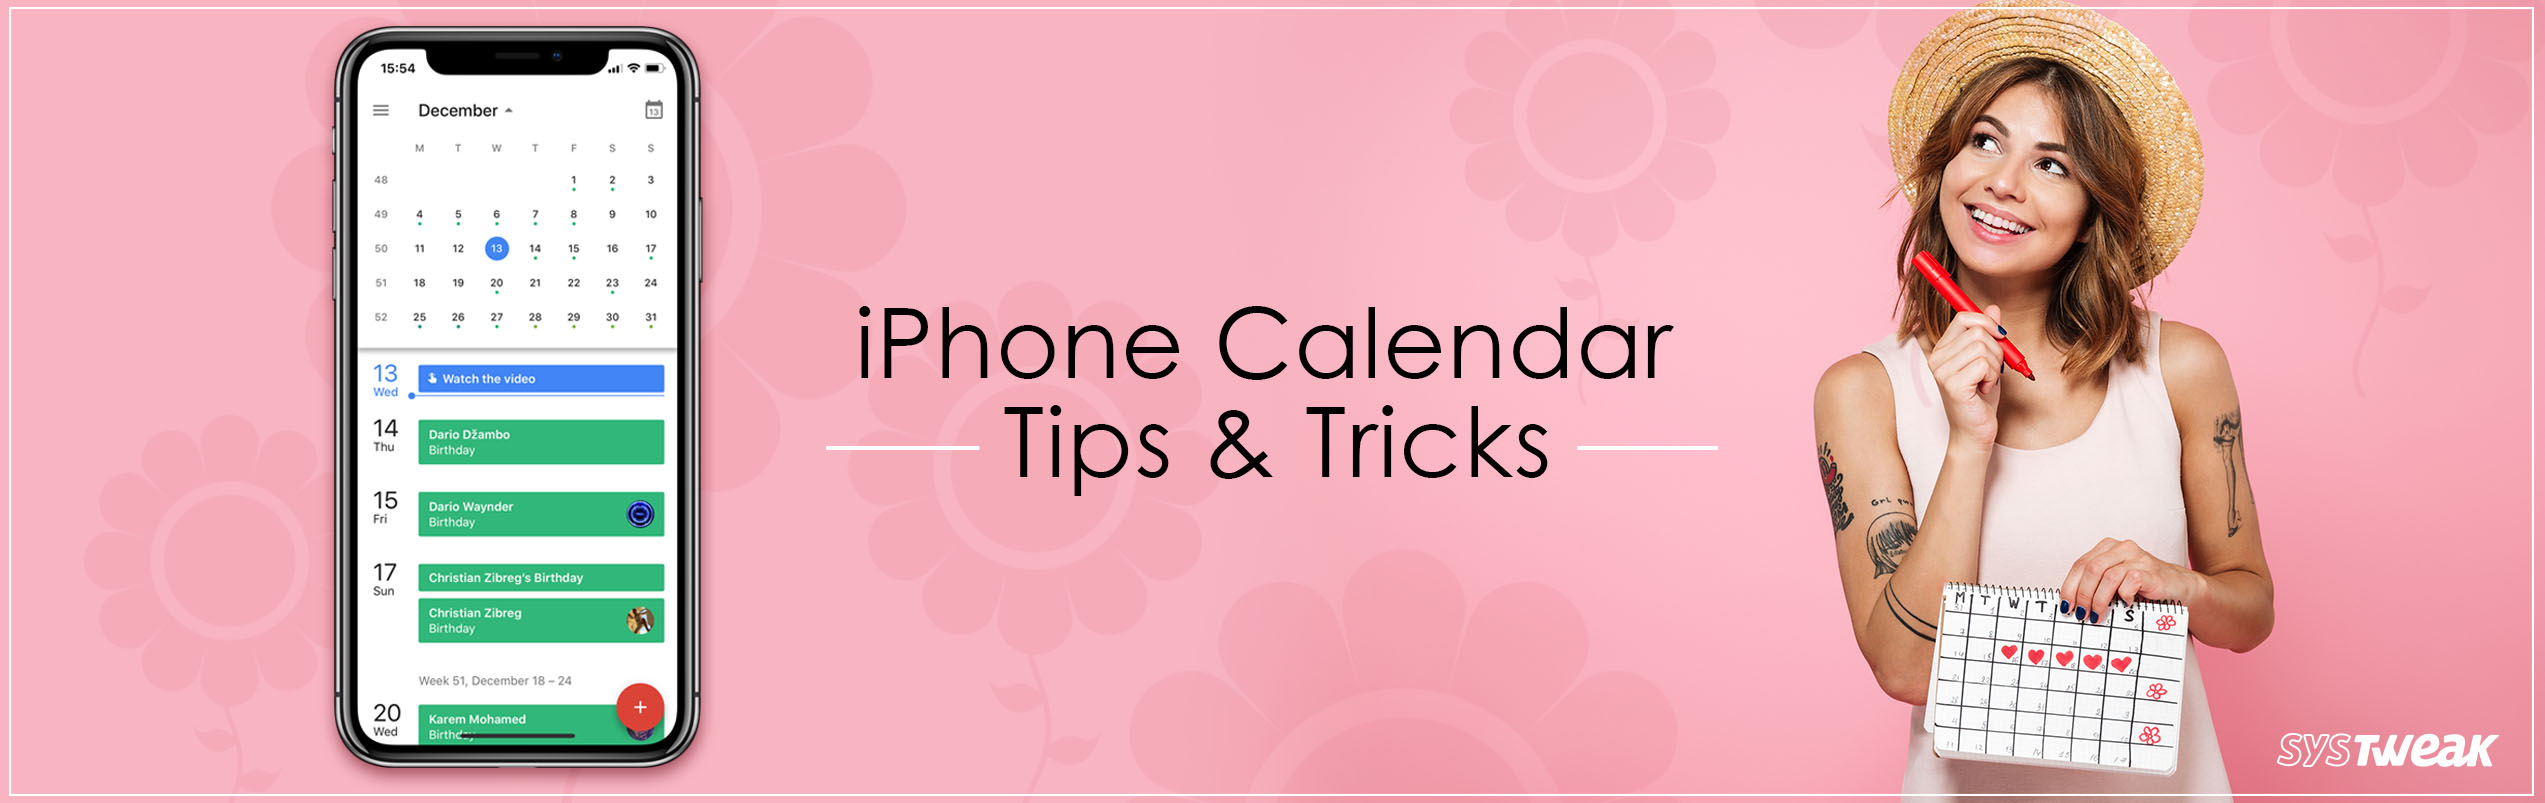 Make the Most Out of iPhone Calendar With These 6 Settings